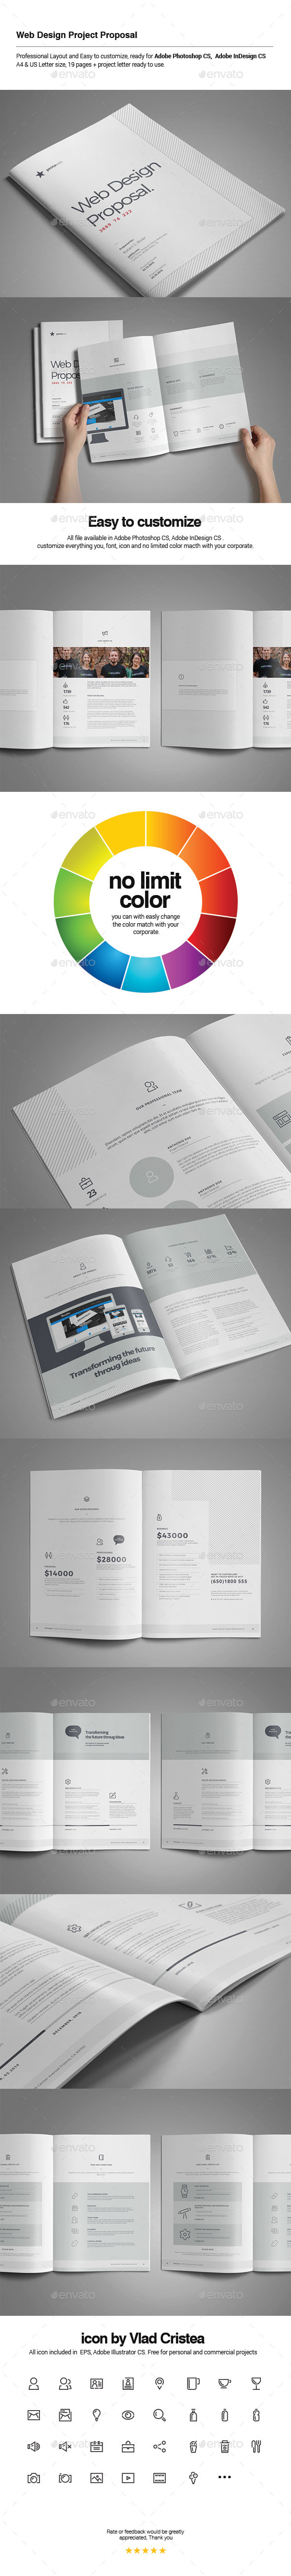 GraphicRiver Web Design Proposal 10733933